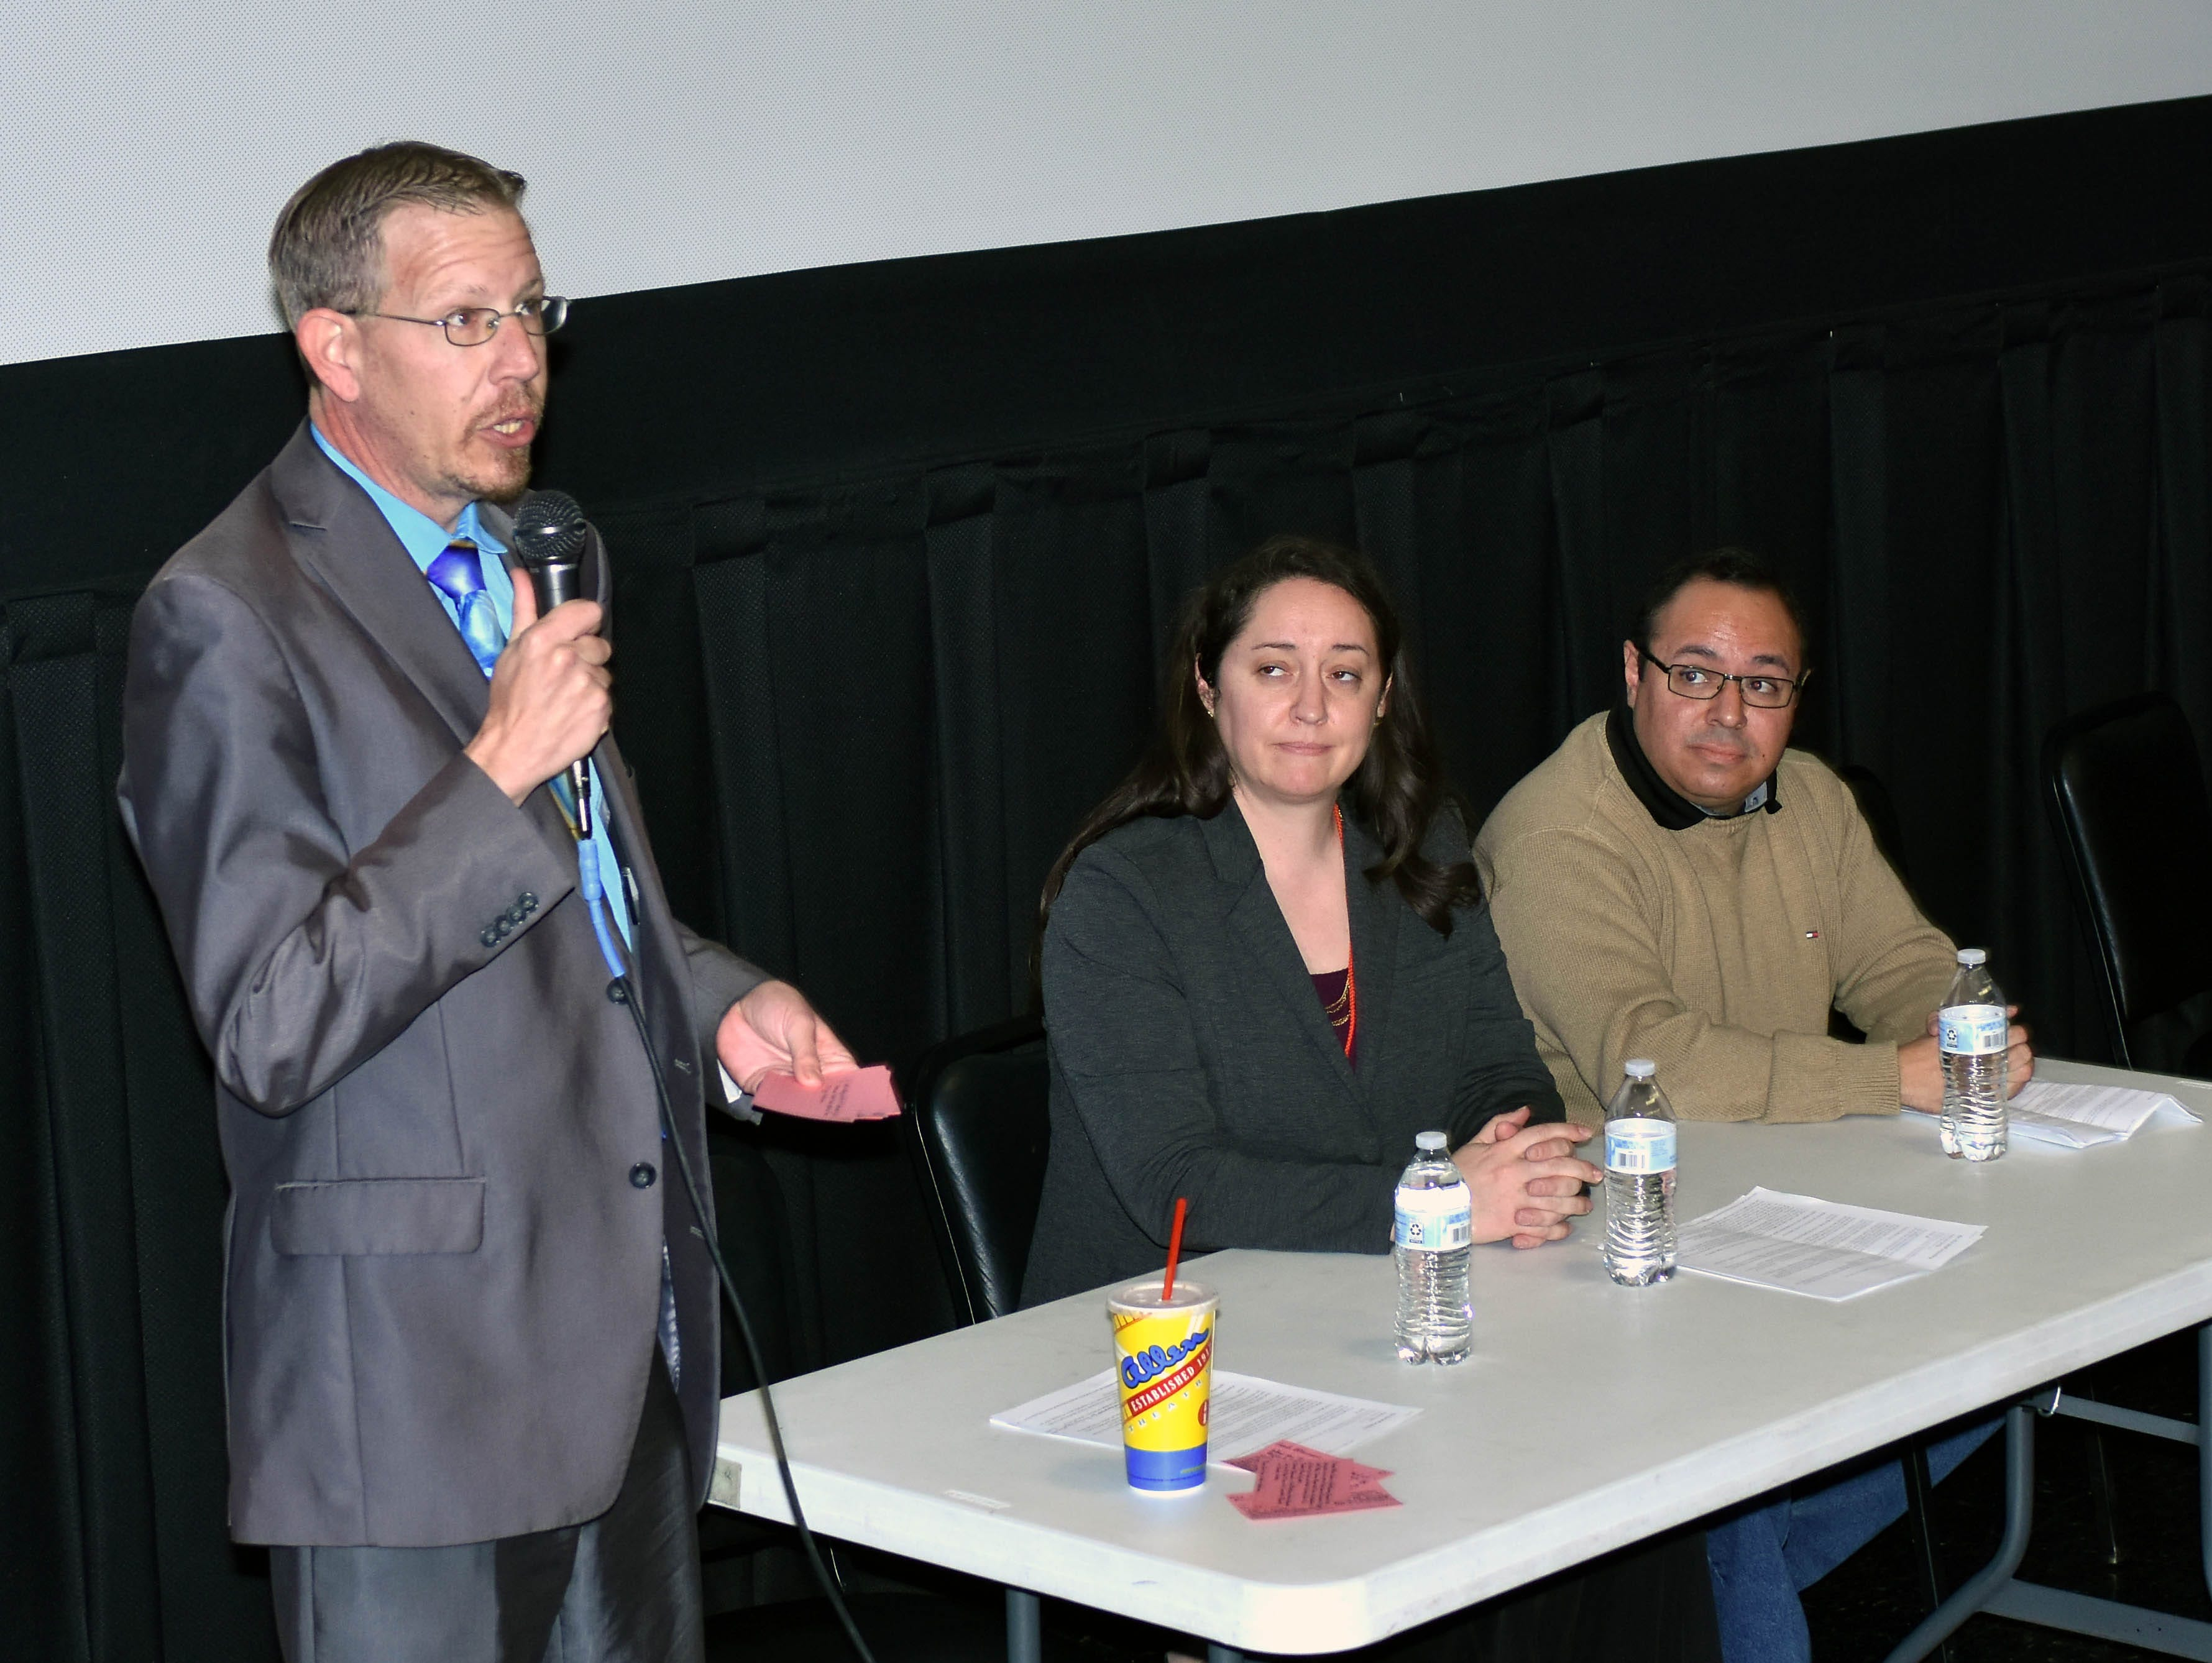 """Damien Willis, Las Cruces Public Schools public information officer, moderates a discussion following a screening of """"The Wall"""" Saturday, Feb. 23, 2019, at Cineport 10, part of the Las Cruces International Film Festival. Las Cruces Sun-News reporter Diana Alba Soular, center, and Daniel Borunda, right, were the panelists."""